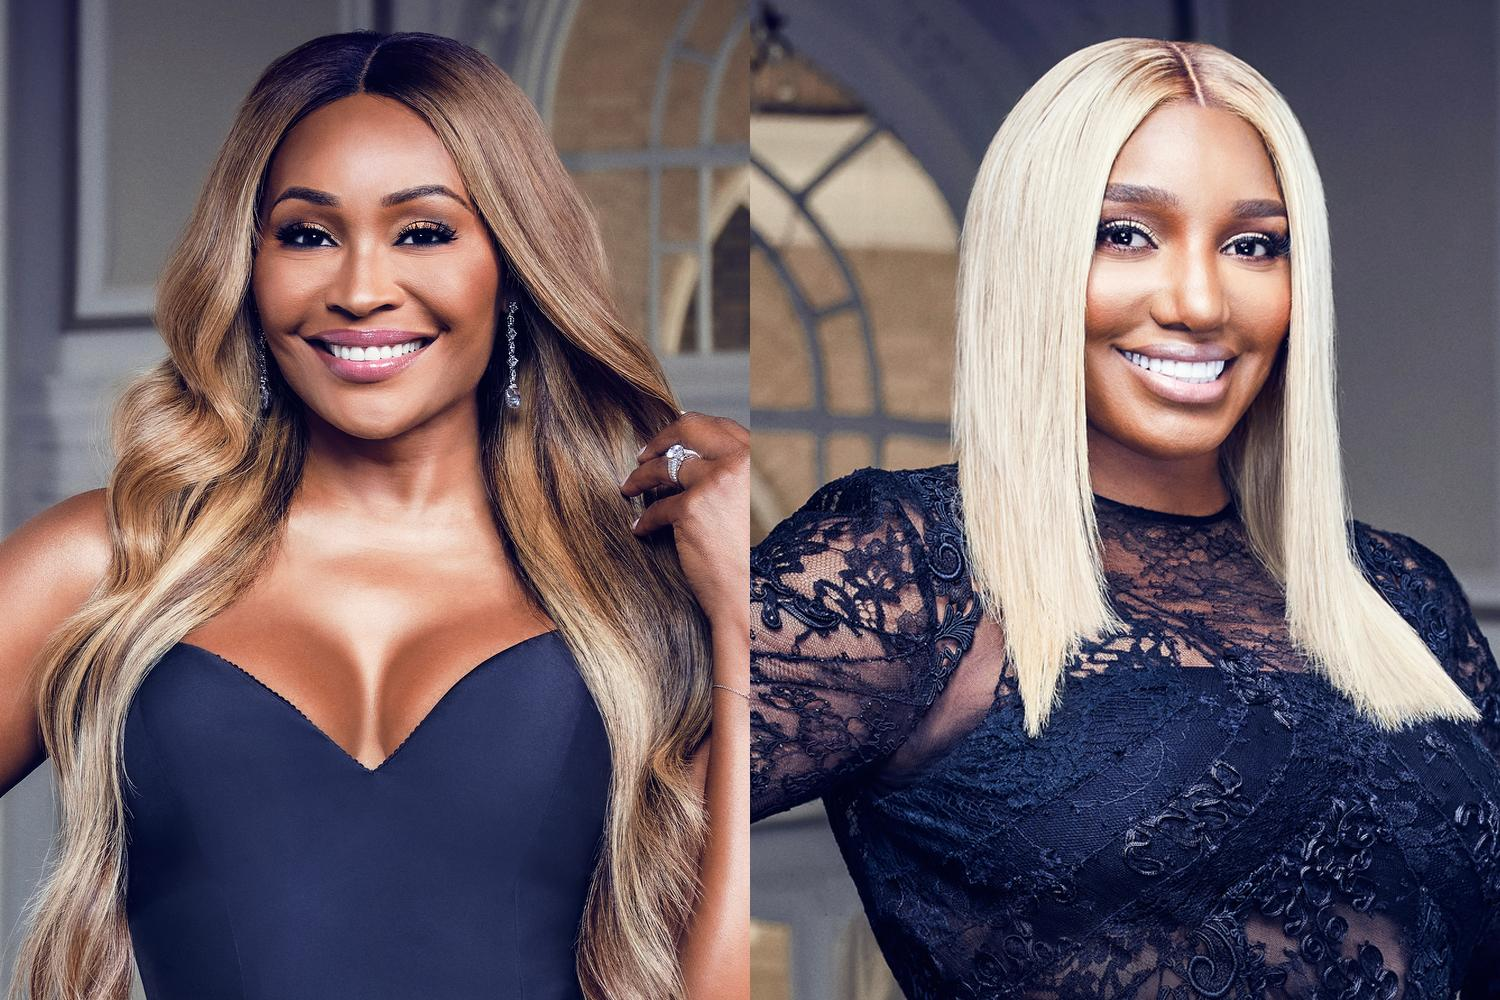 NeNe Leakes Reportedly 'Reached Out' To Cynthia Bailey Hours Before Her Wedding Despite Not Attending It - Details!